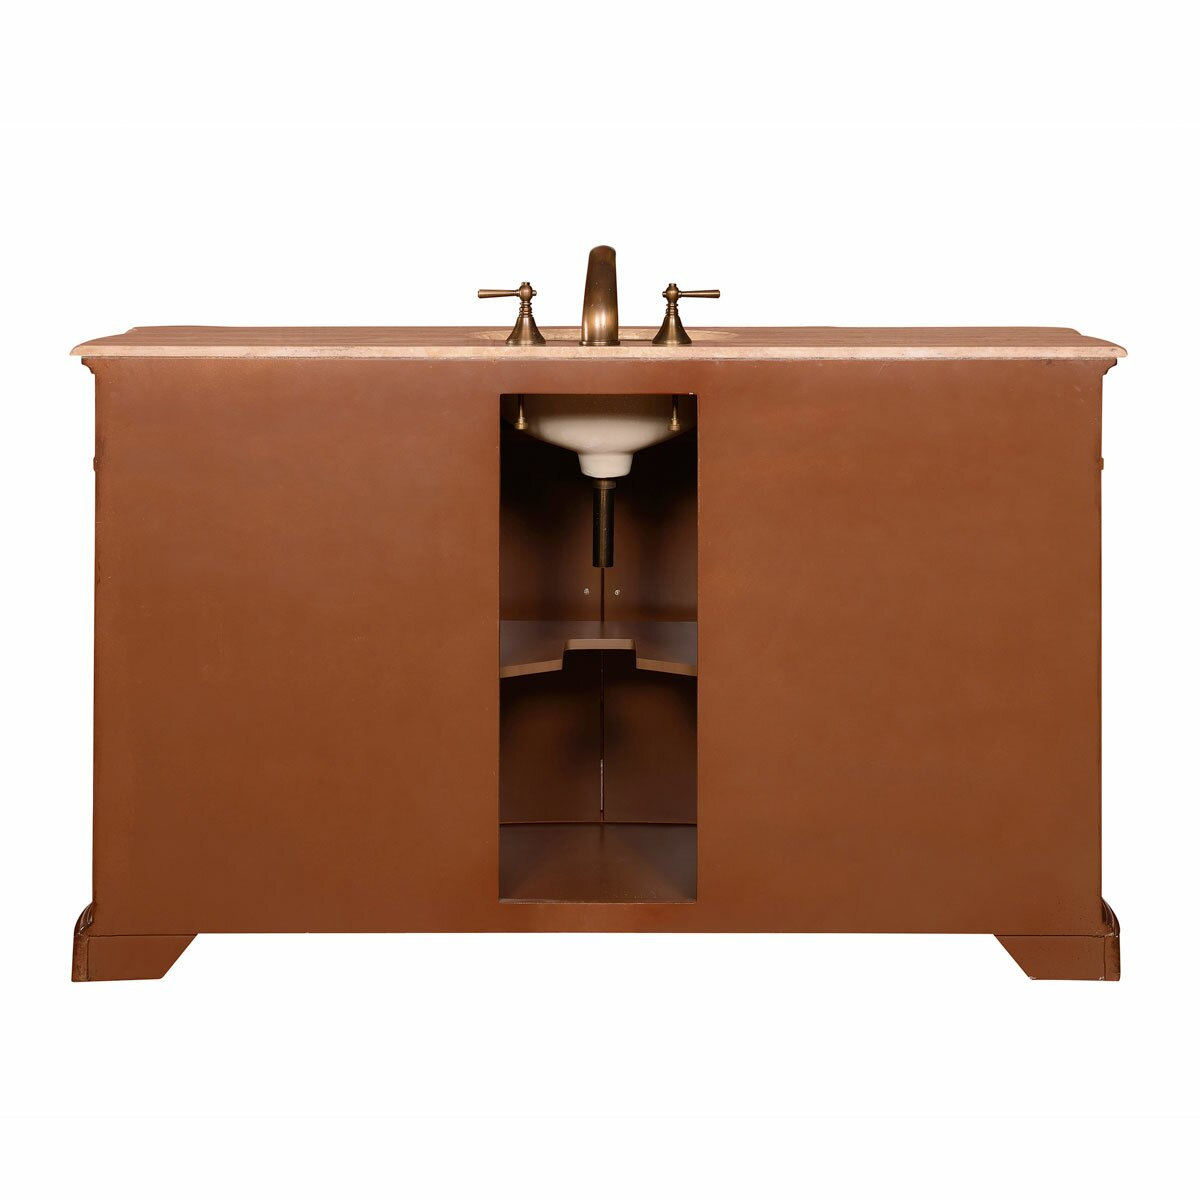 Silkroad exclusive 60 sink cabinet bathroom vanity set for Bathroom chest